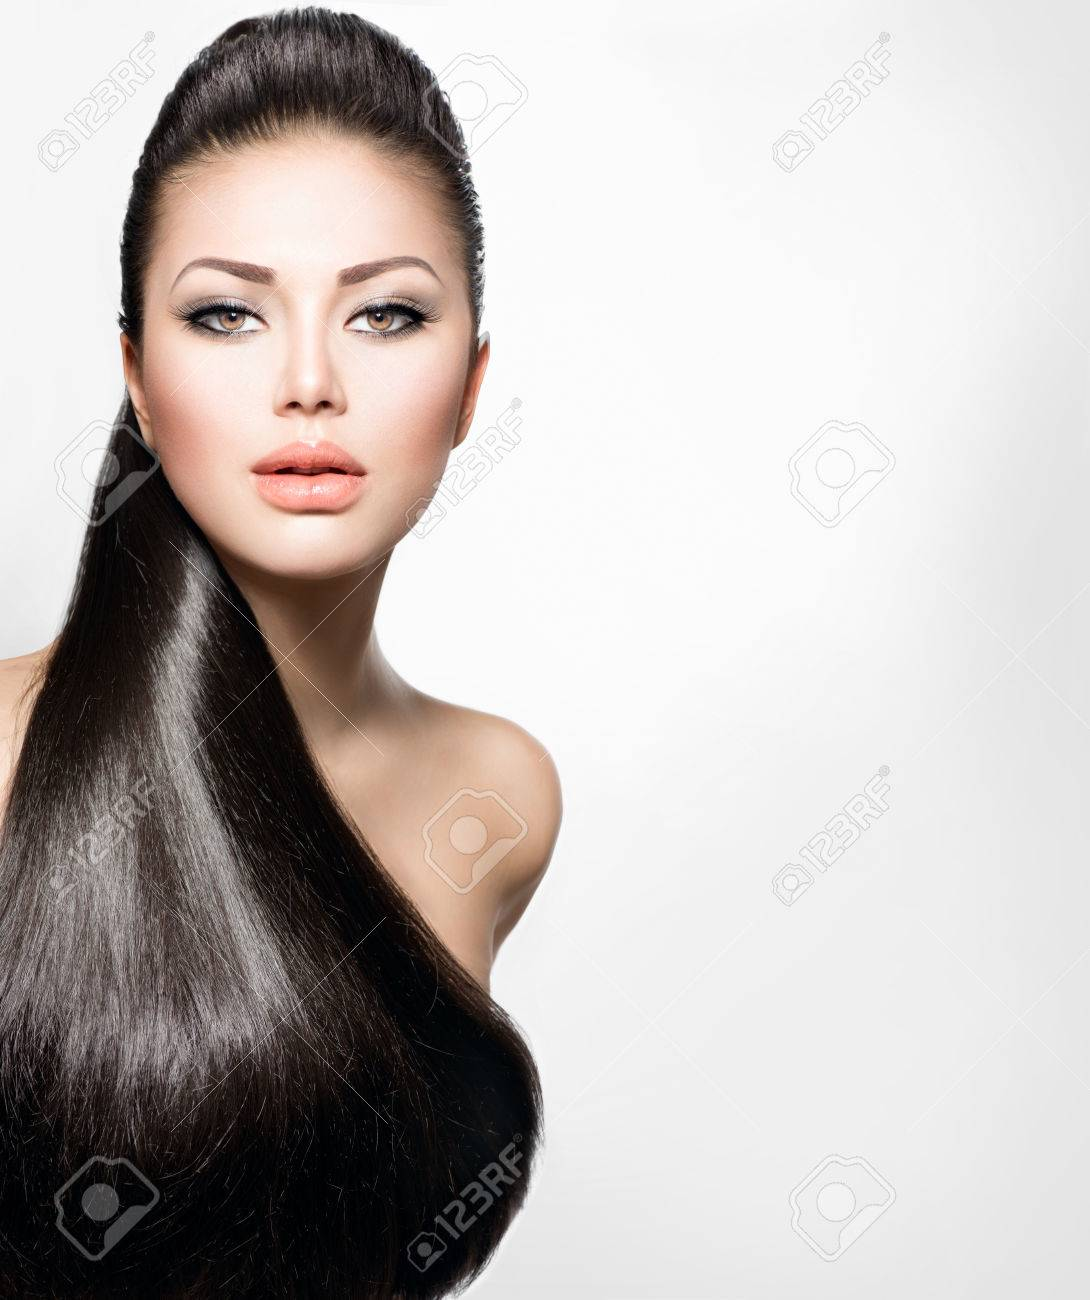 Fashion Model Girl with Long Healthy Straight Hair Stock Photo - 25444143